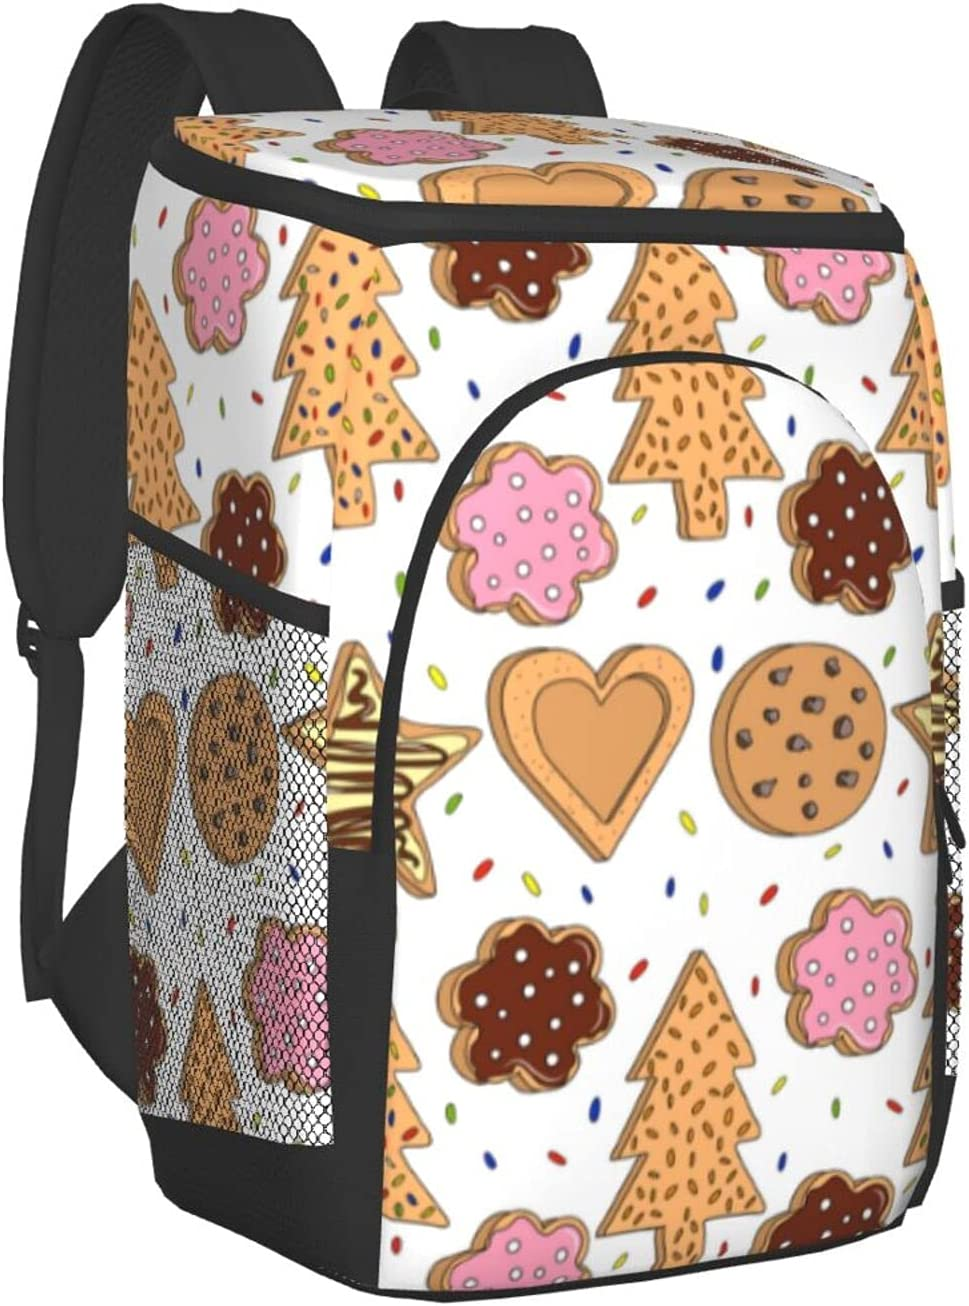 In stock Sales results No. 1 Golden Retrievers Ball Paw Borns Backpack Insulated Cooler Bag L